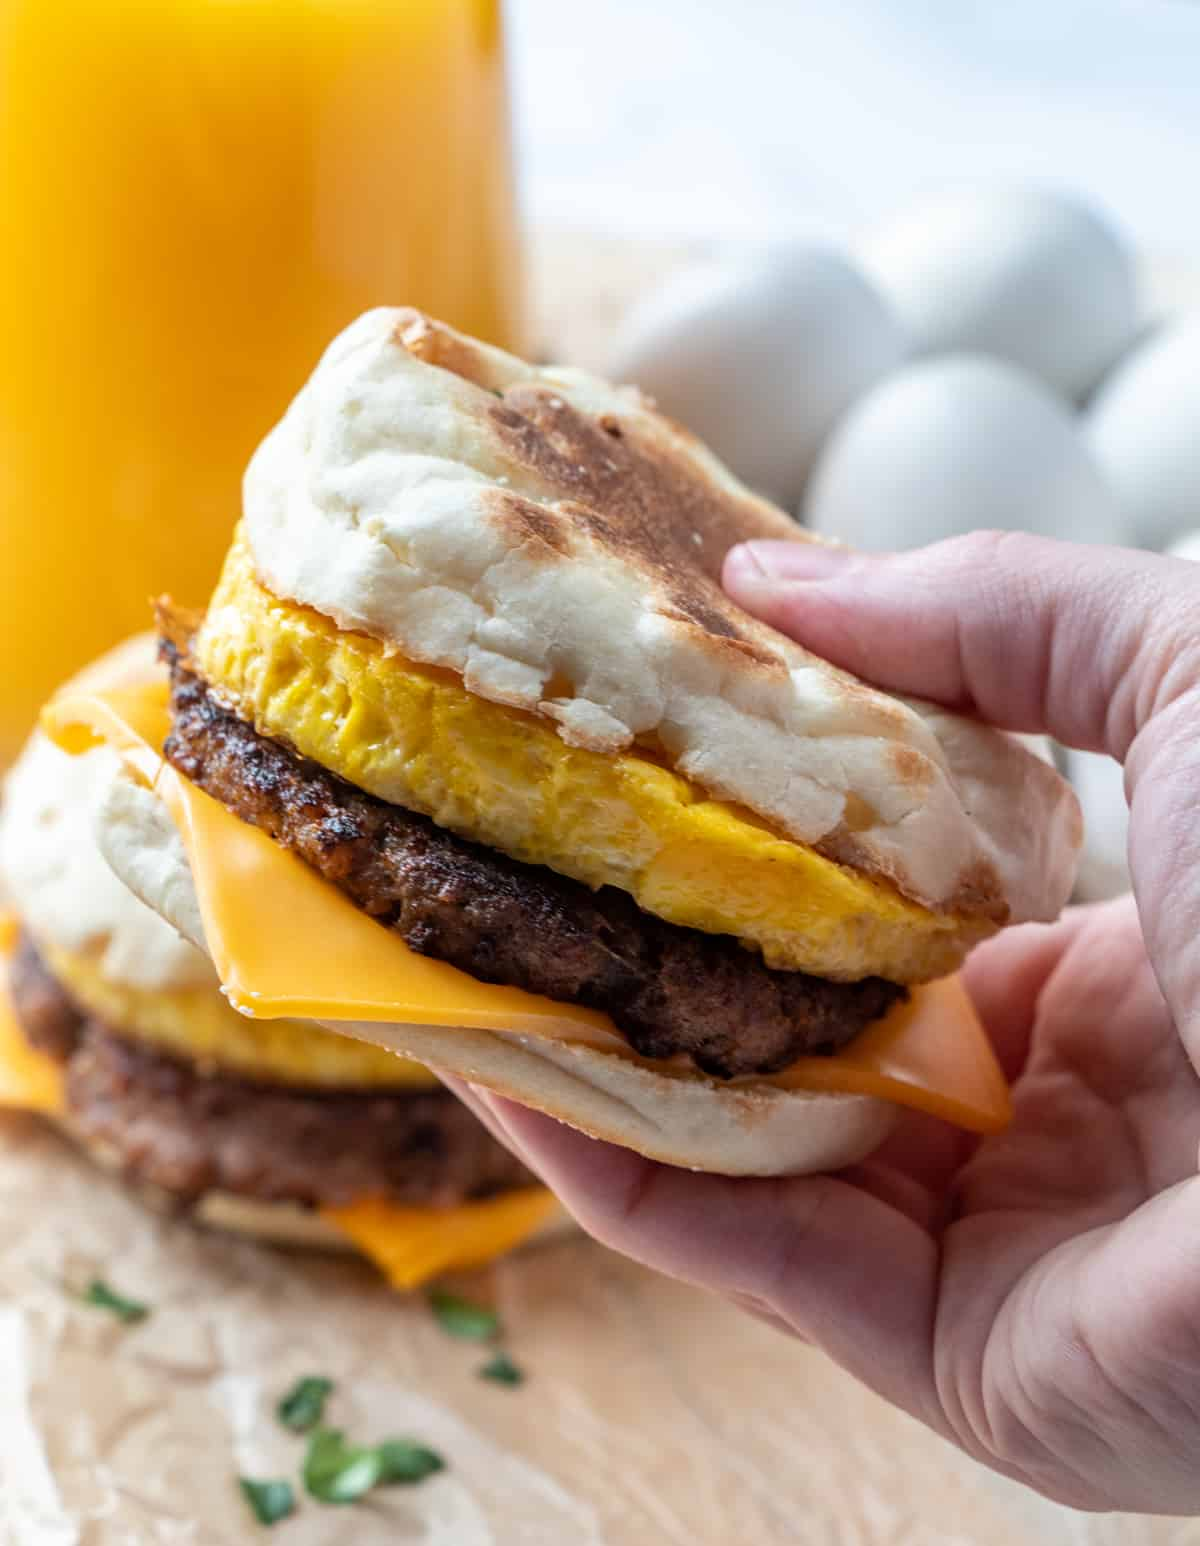 Hand holding one sandwich showing the layers of cheese, sausage and egg